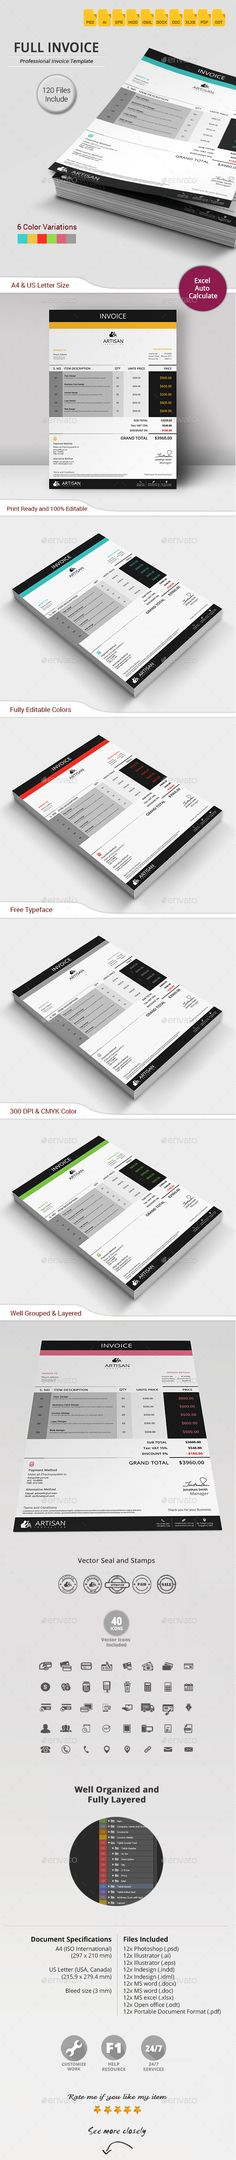 Invoice Template Invoice layout, Business proposal and Proposal - Website Invoice